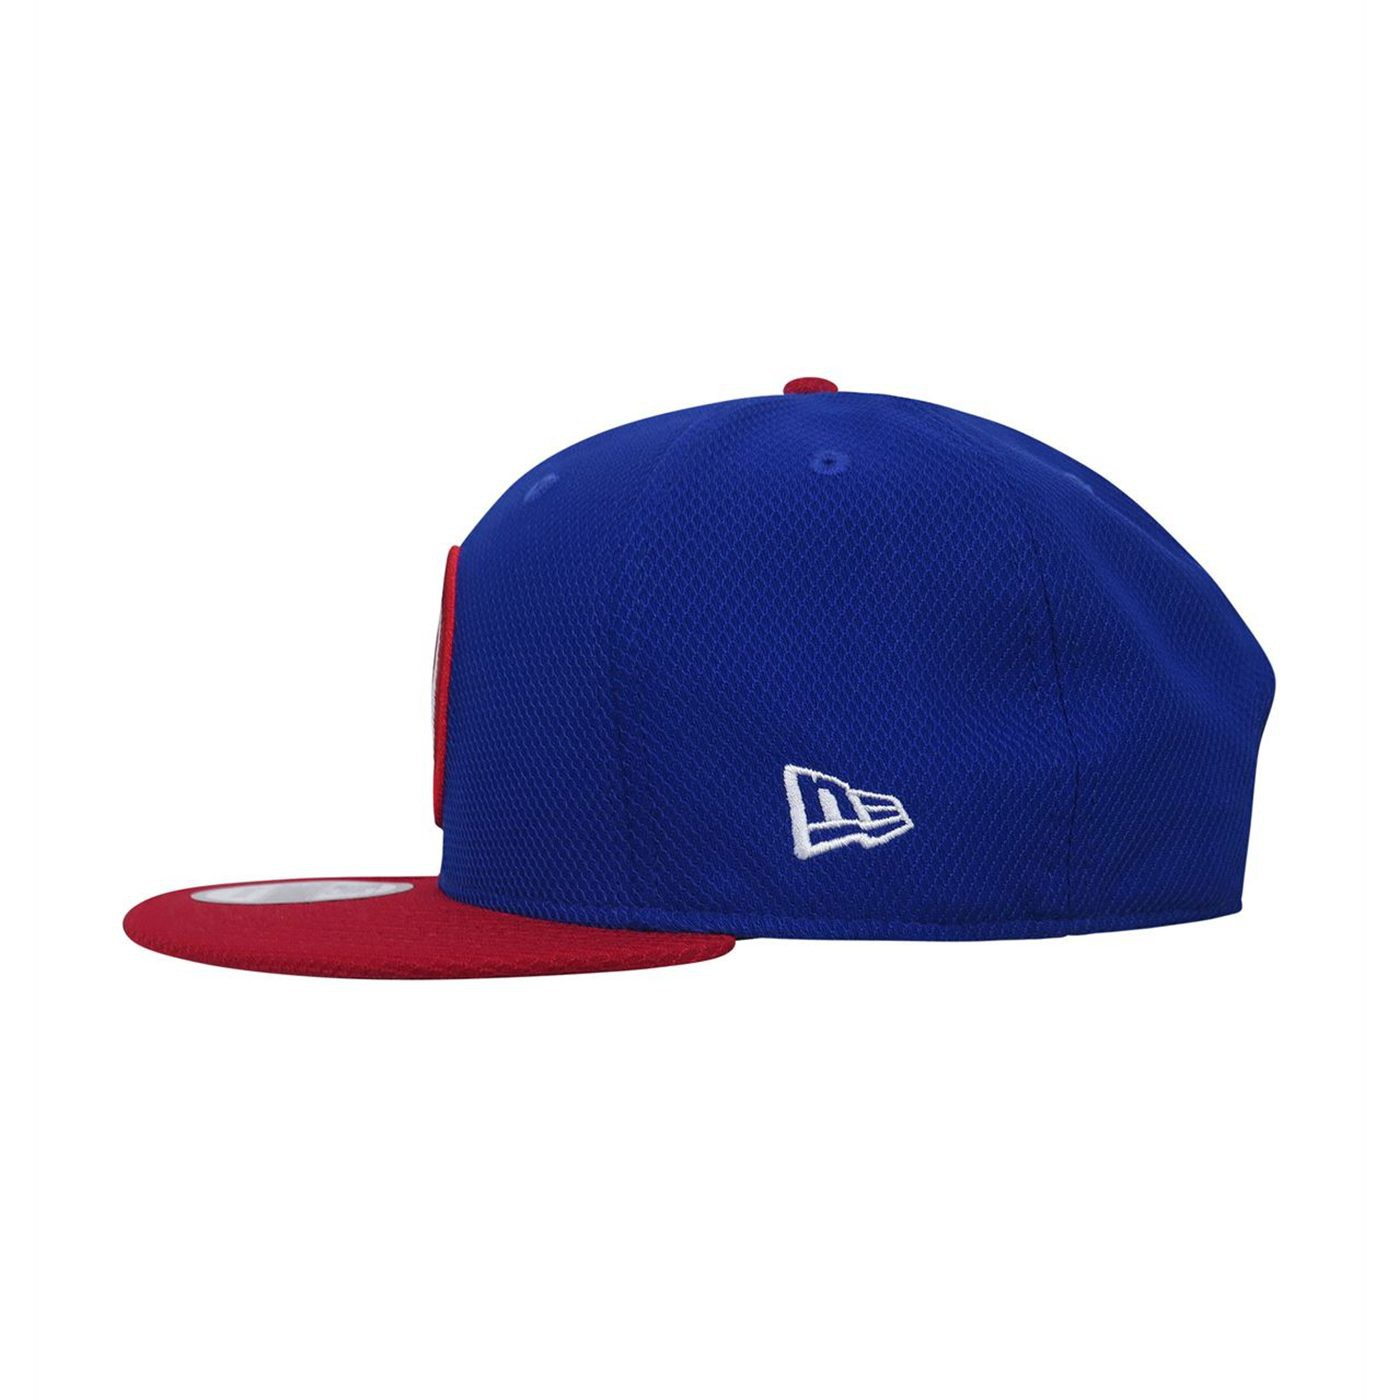 Captain America Shield Blue 9Fifty Hat